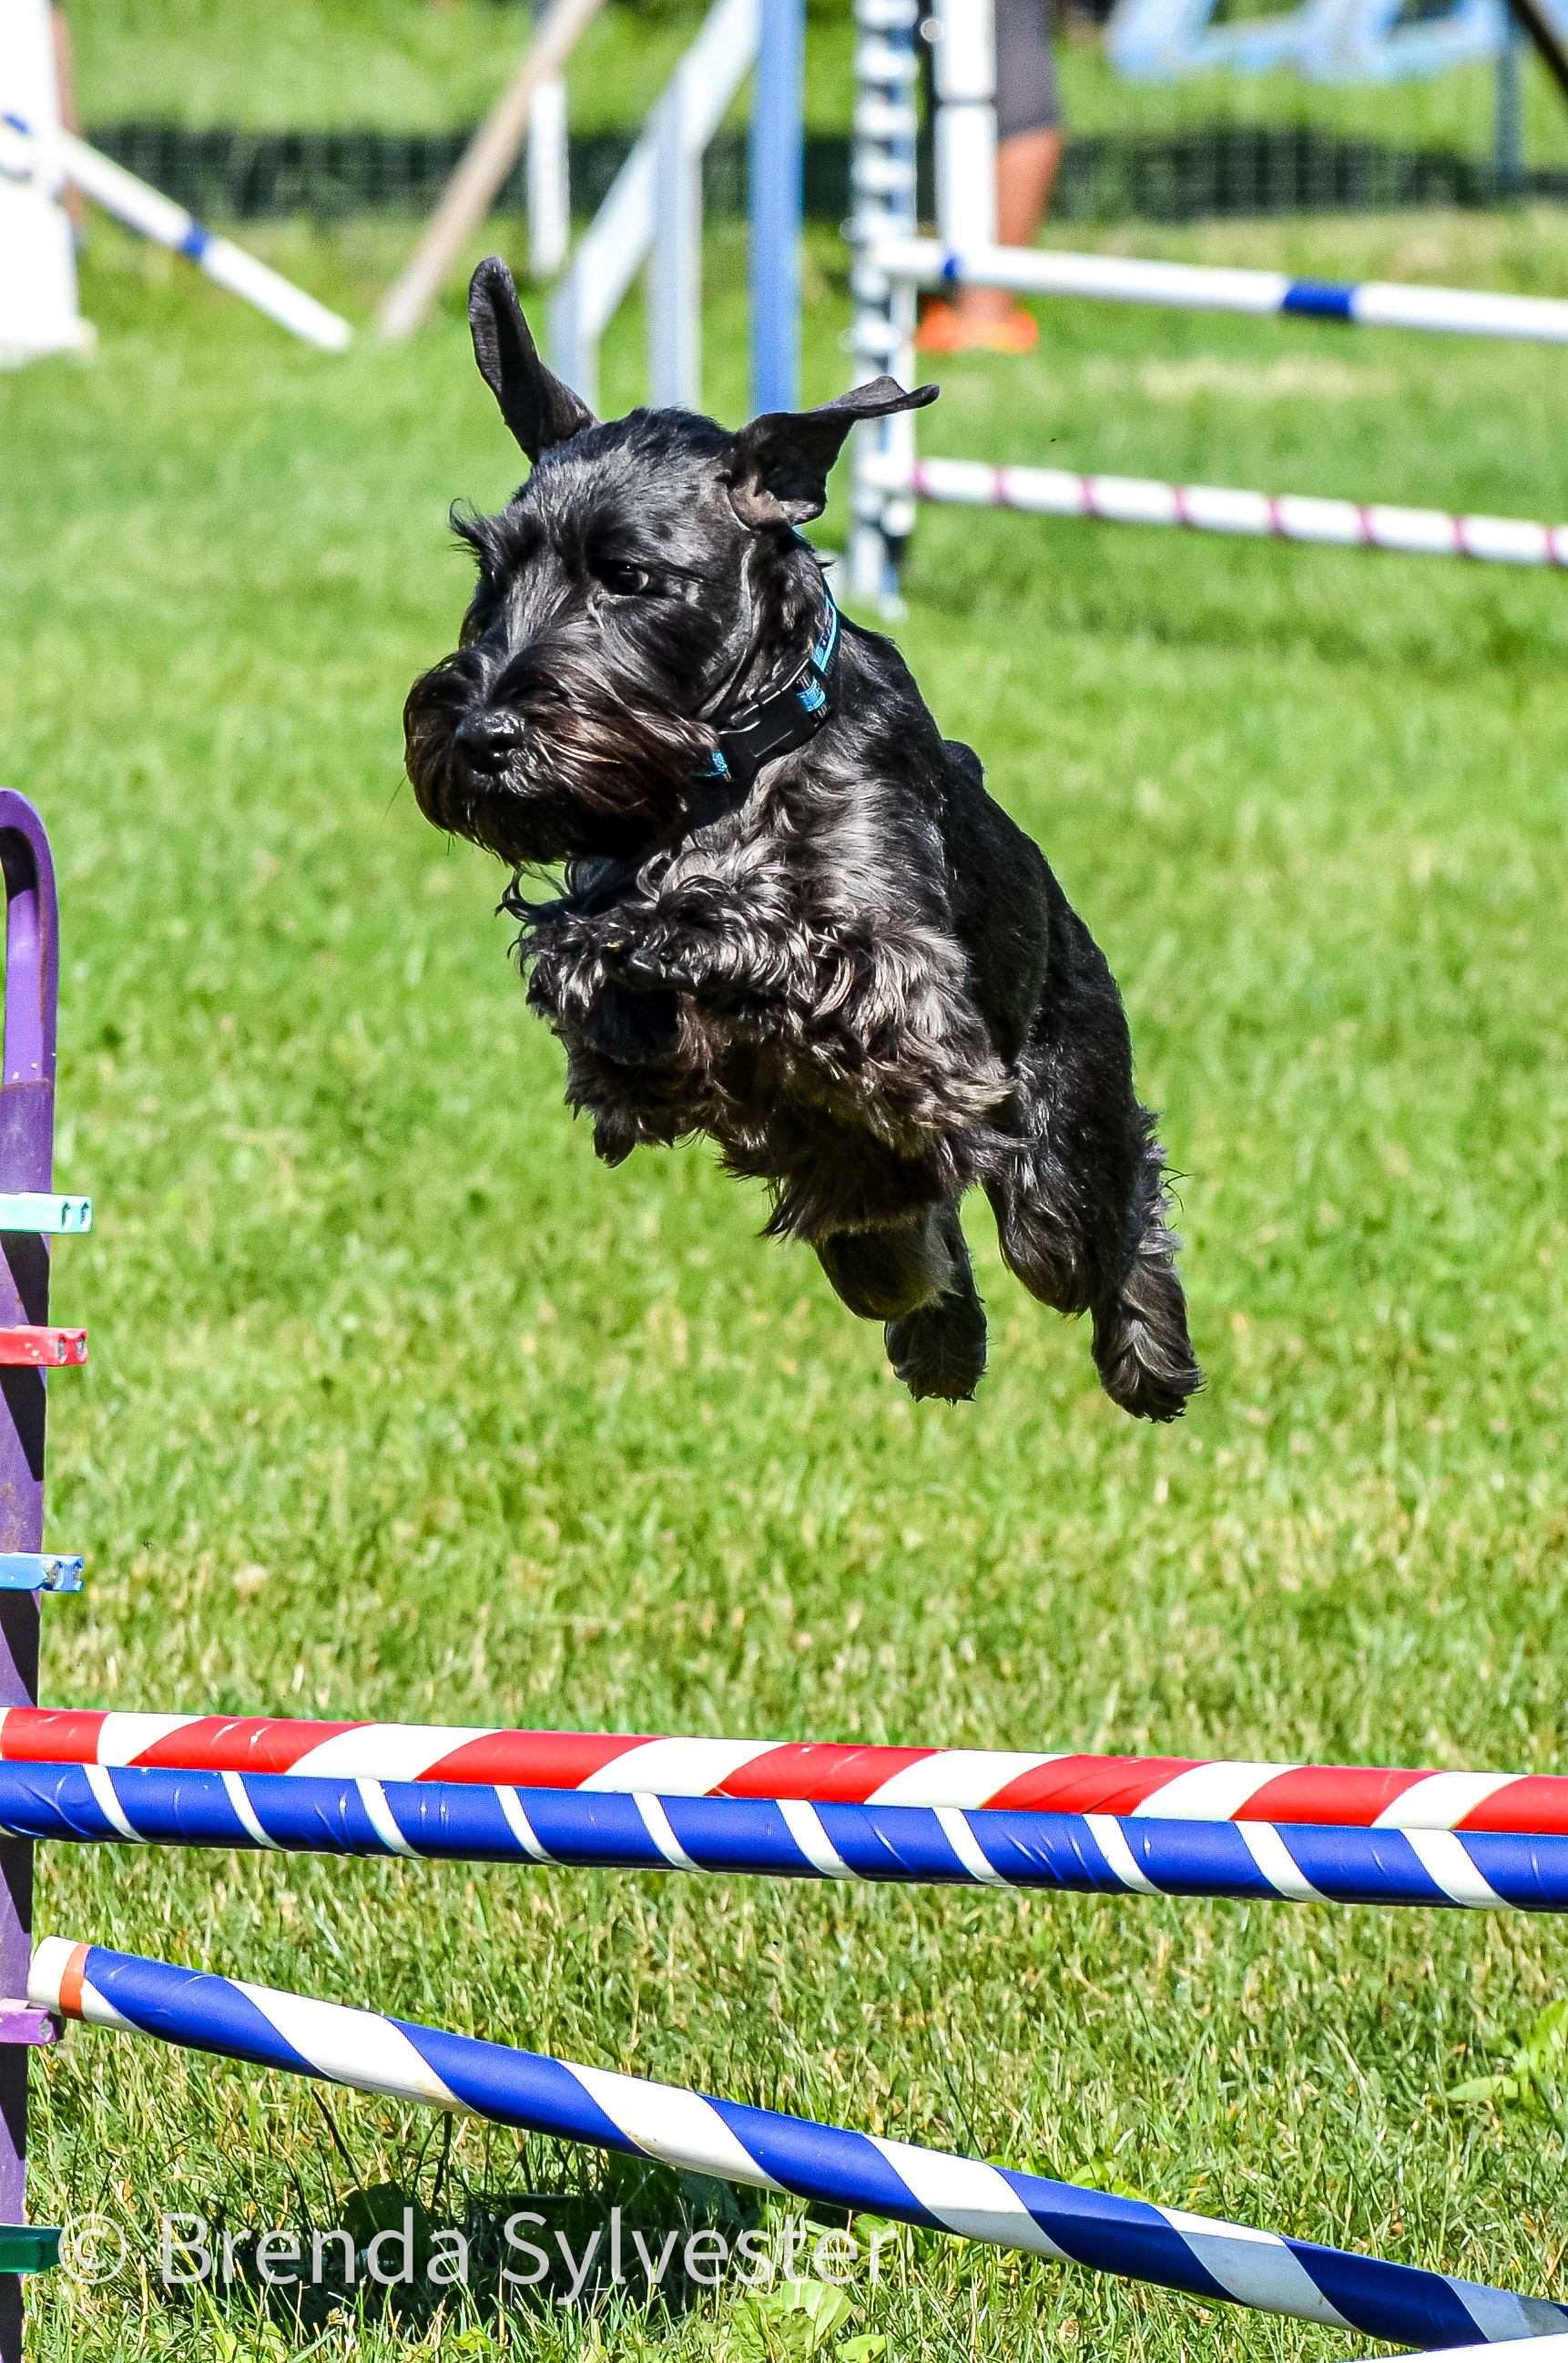 A dog jumps over a hurdle at an agility event.